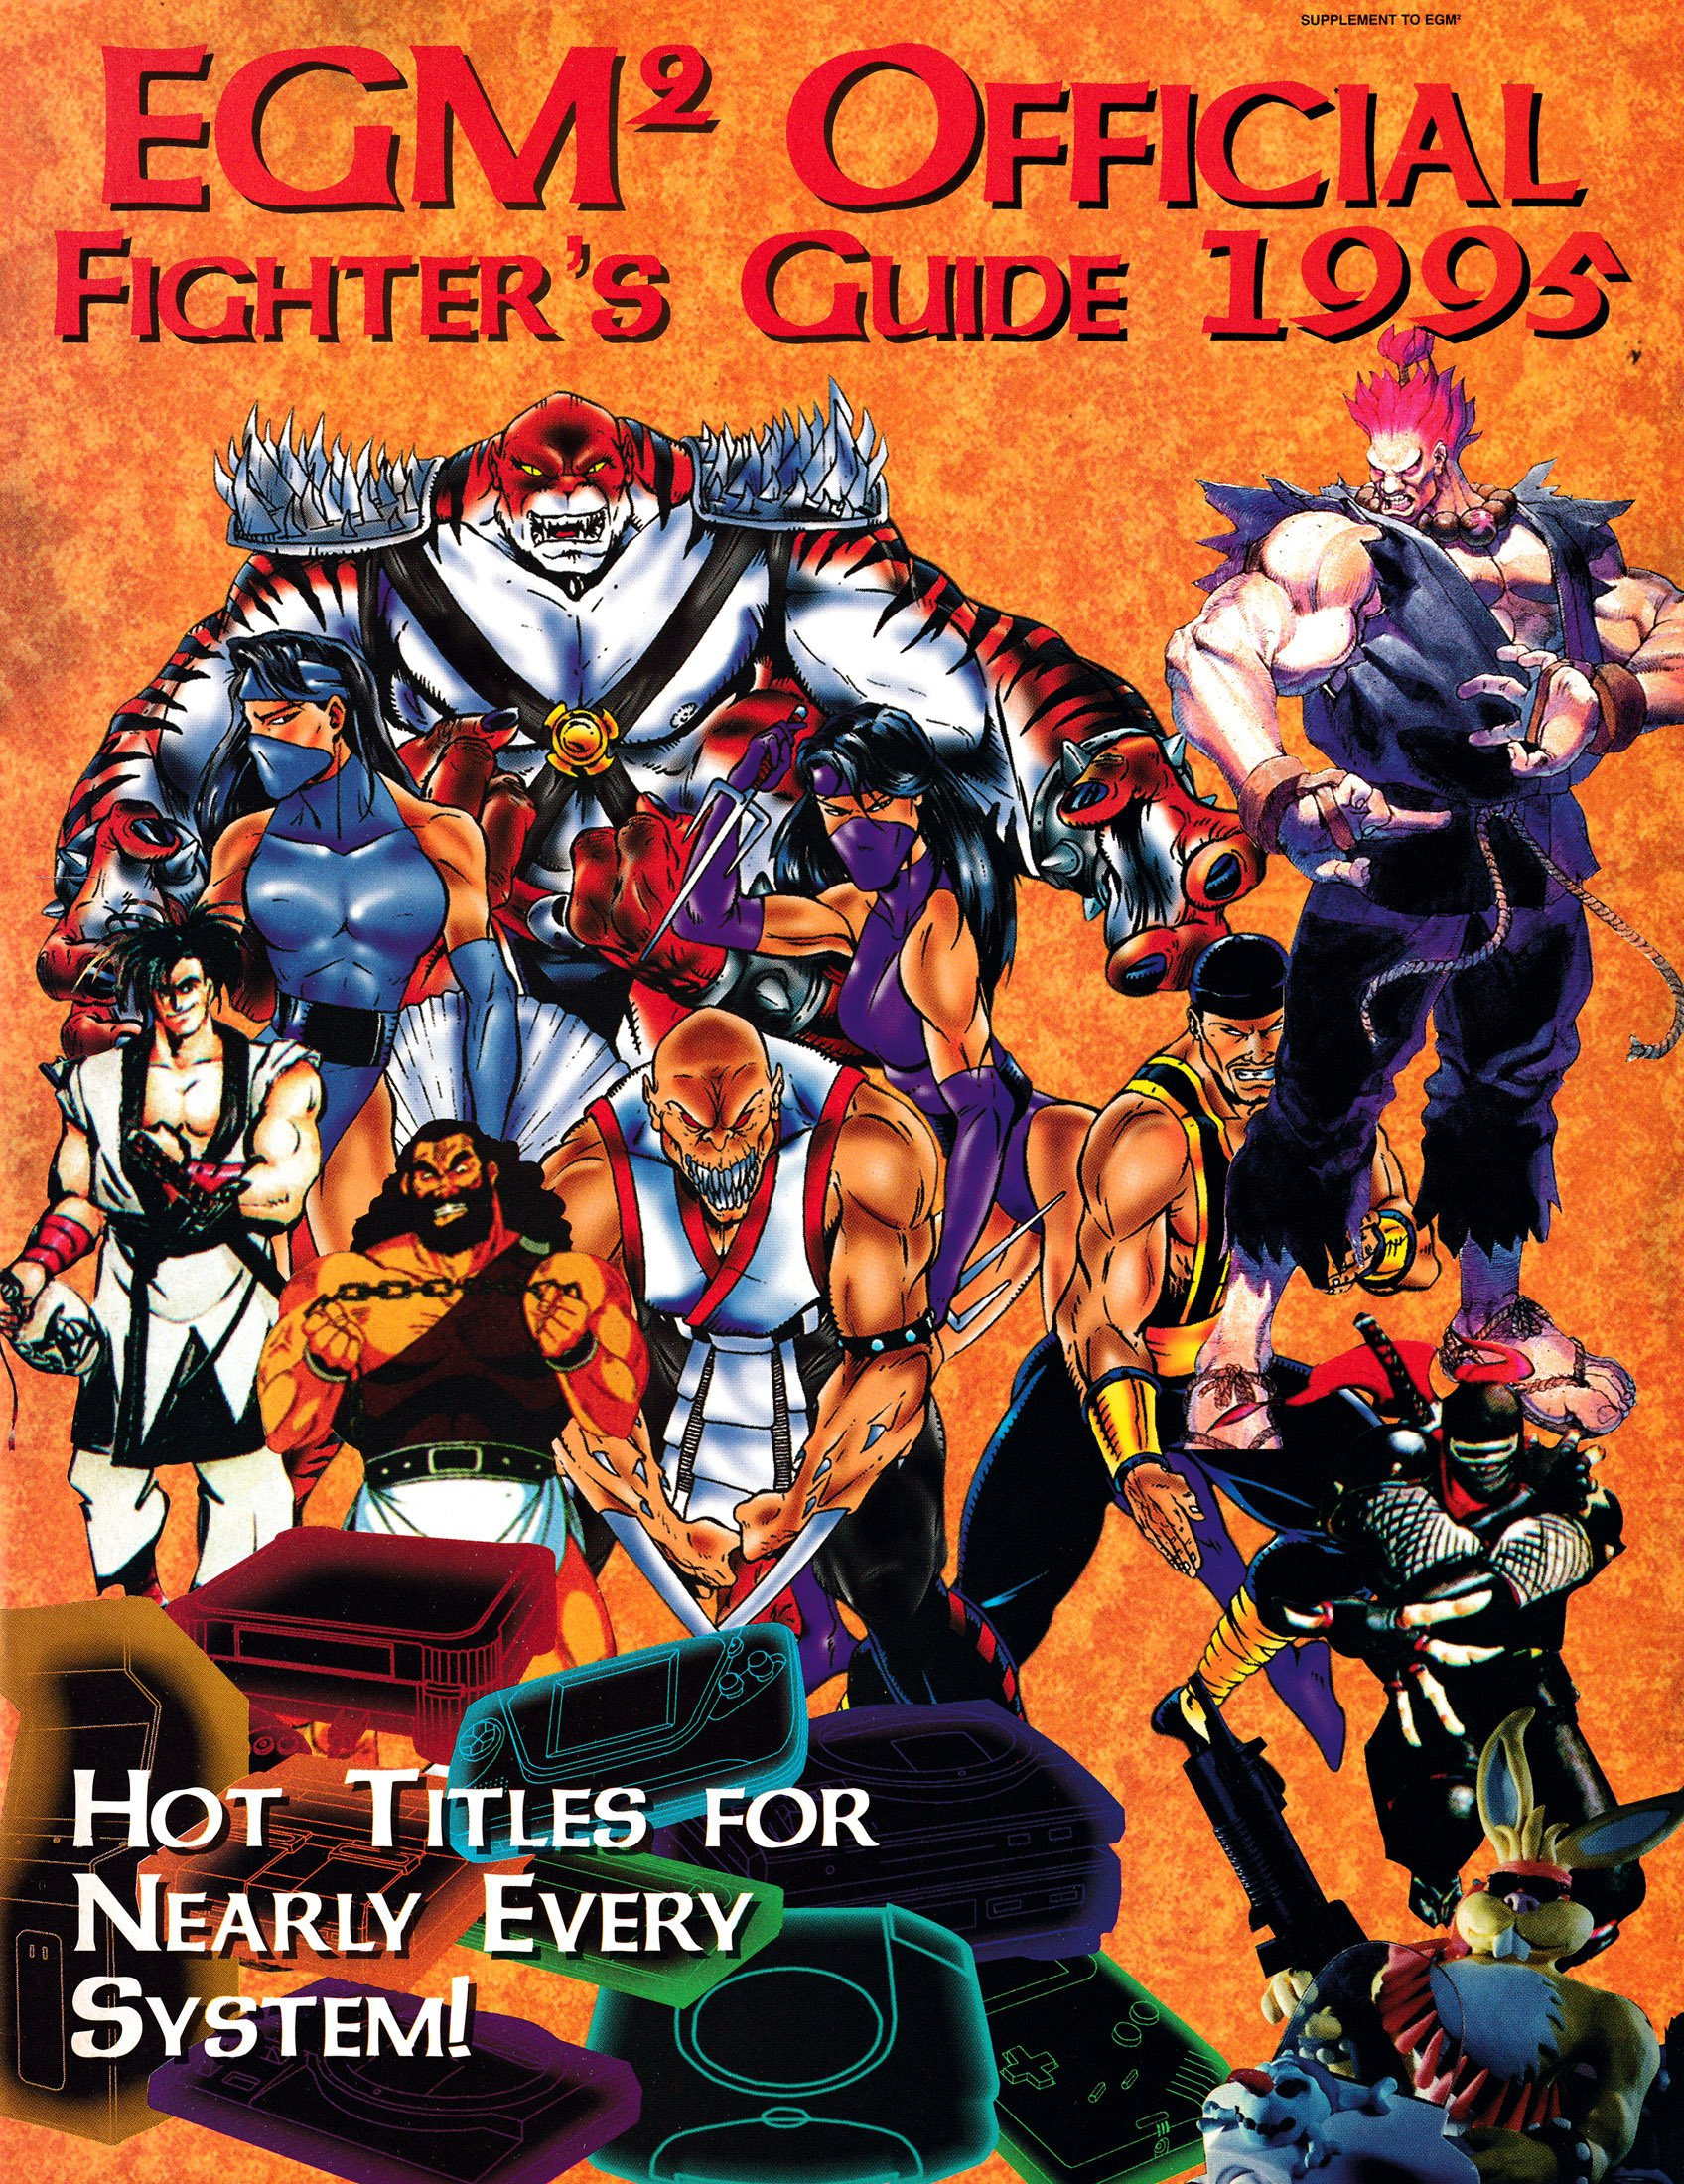 EGM2 Official Fighter's Guide 1995